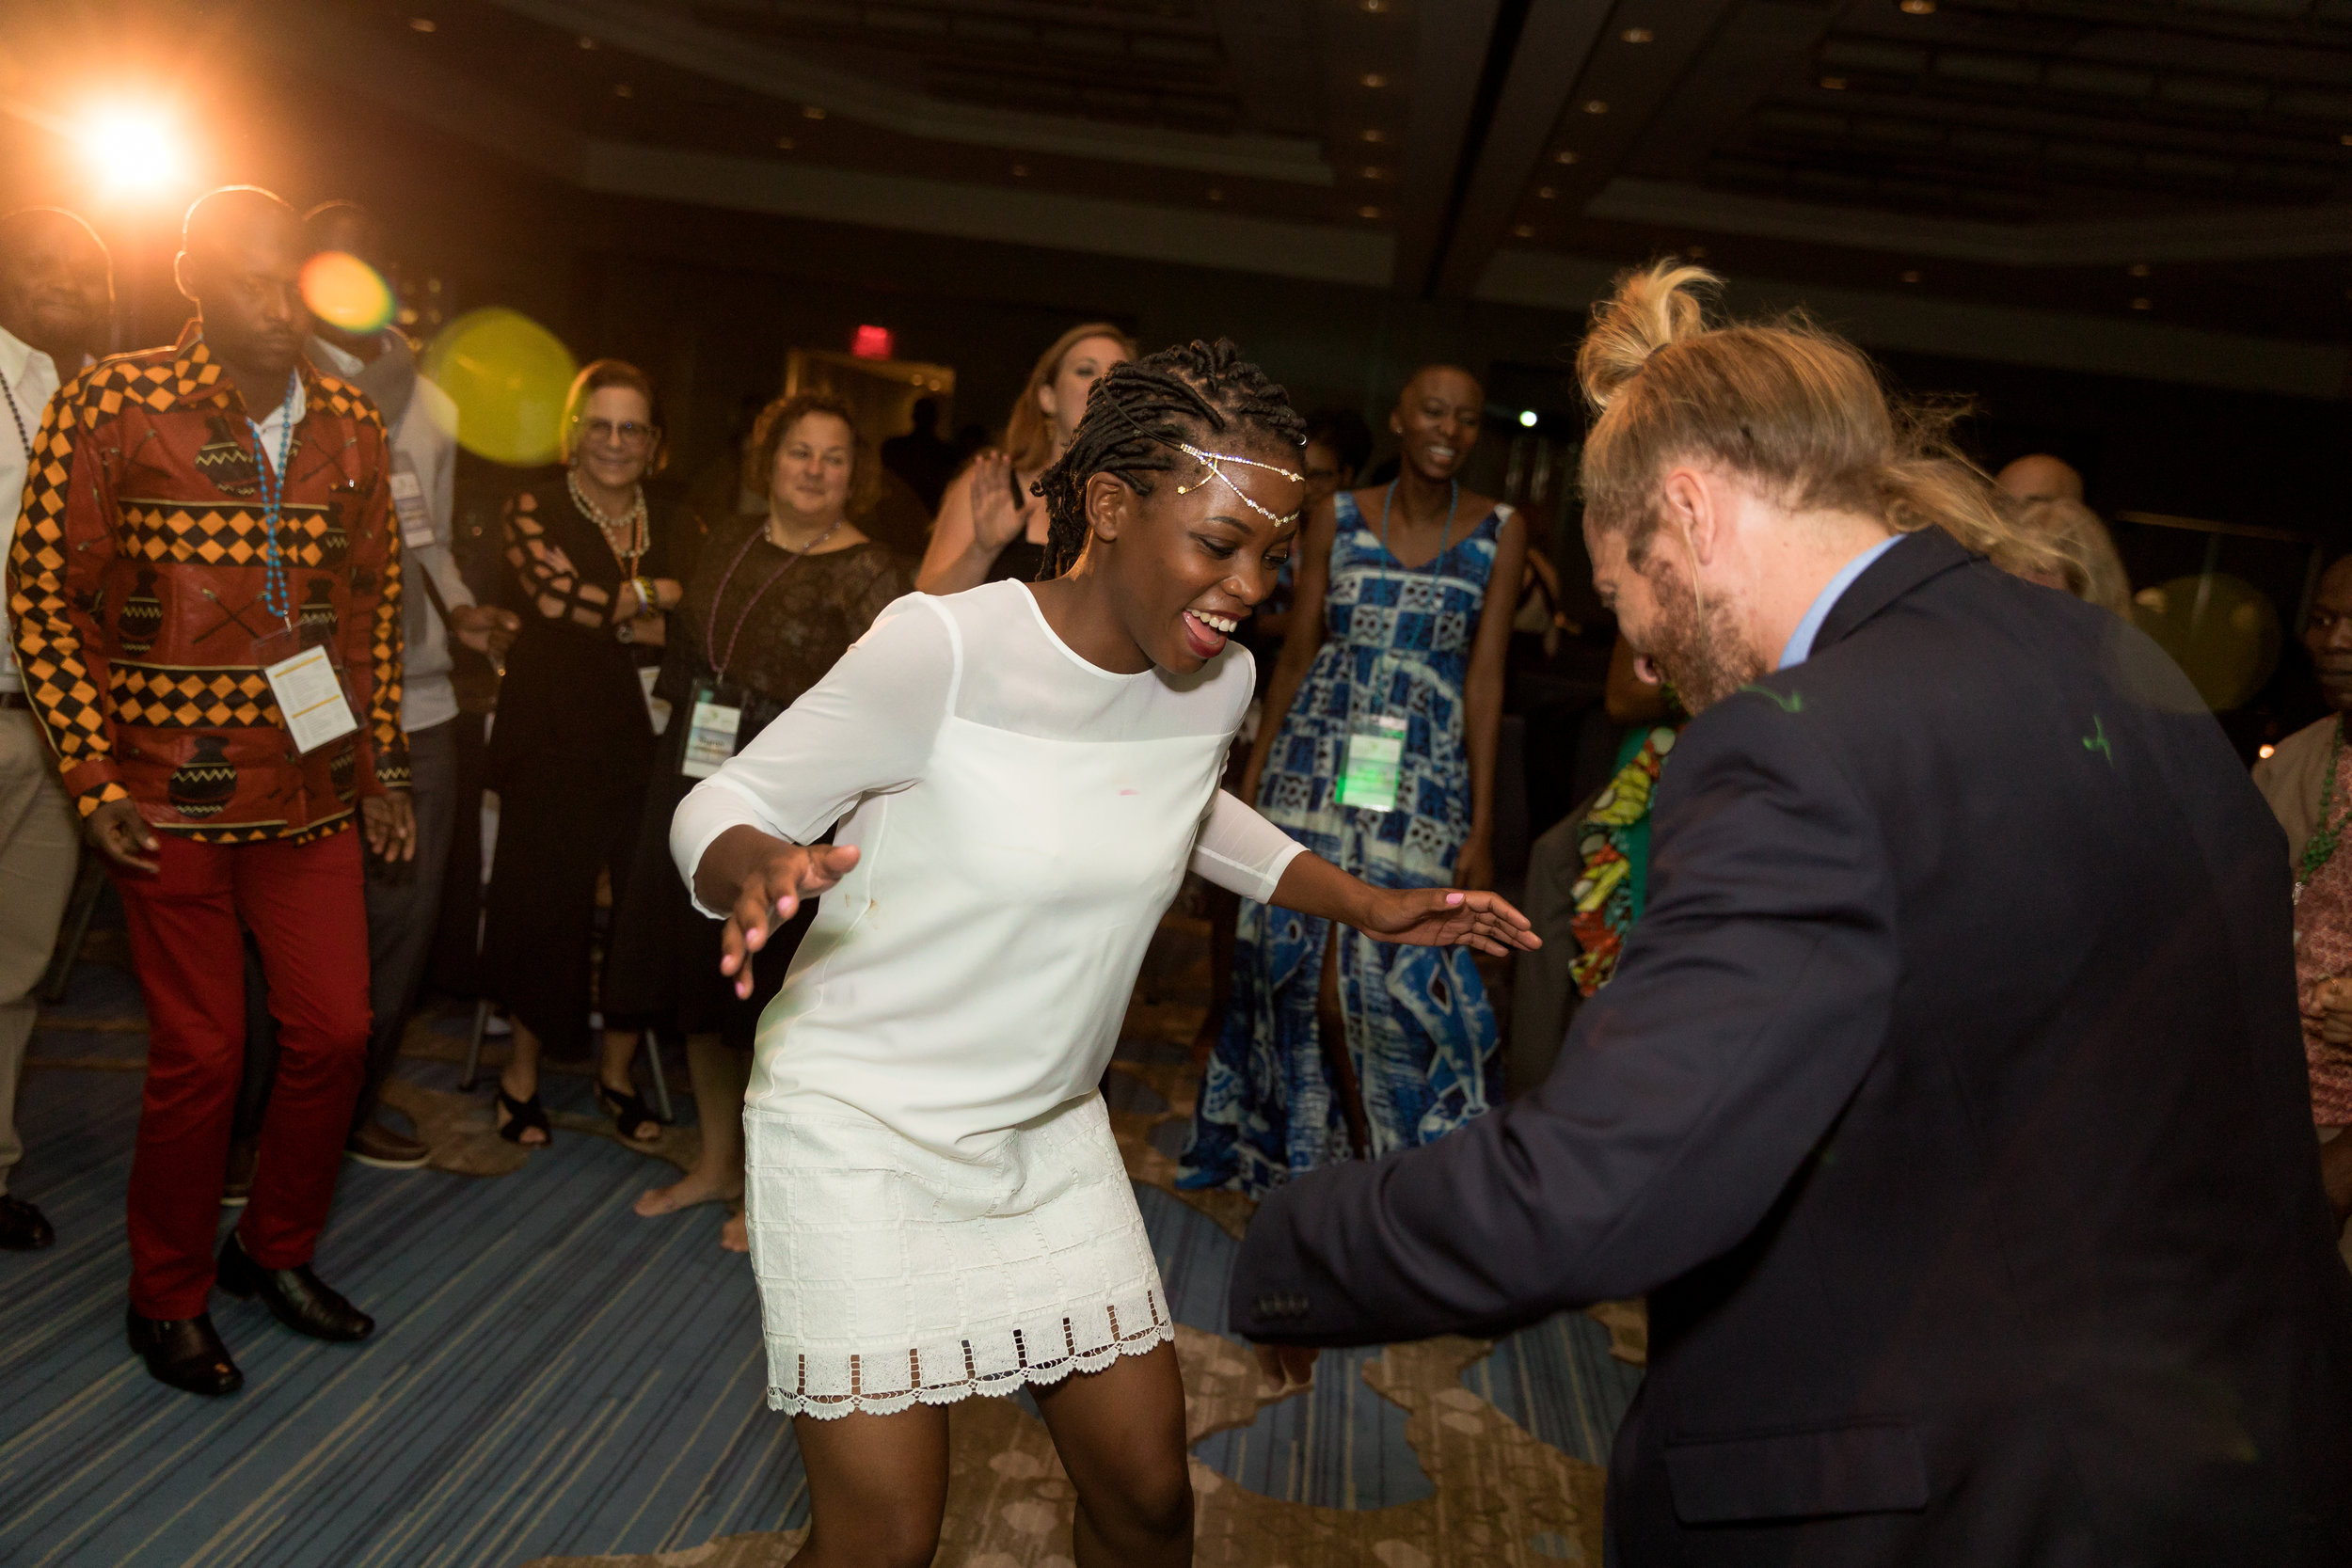 Dance Party at the Segal Family Annual Meeting Gala at the Hyatt in Jersey City